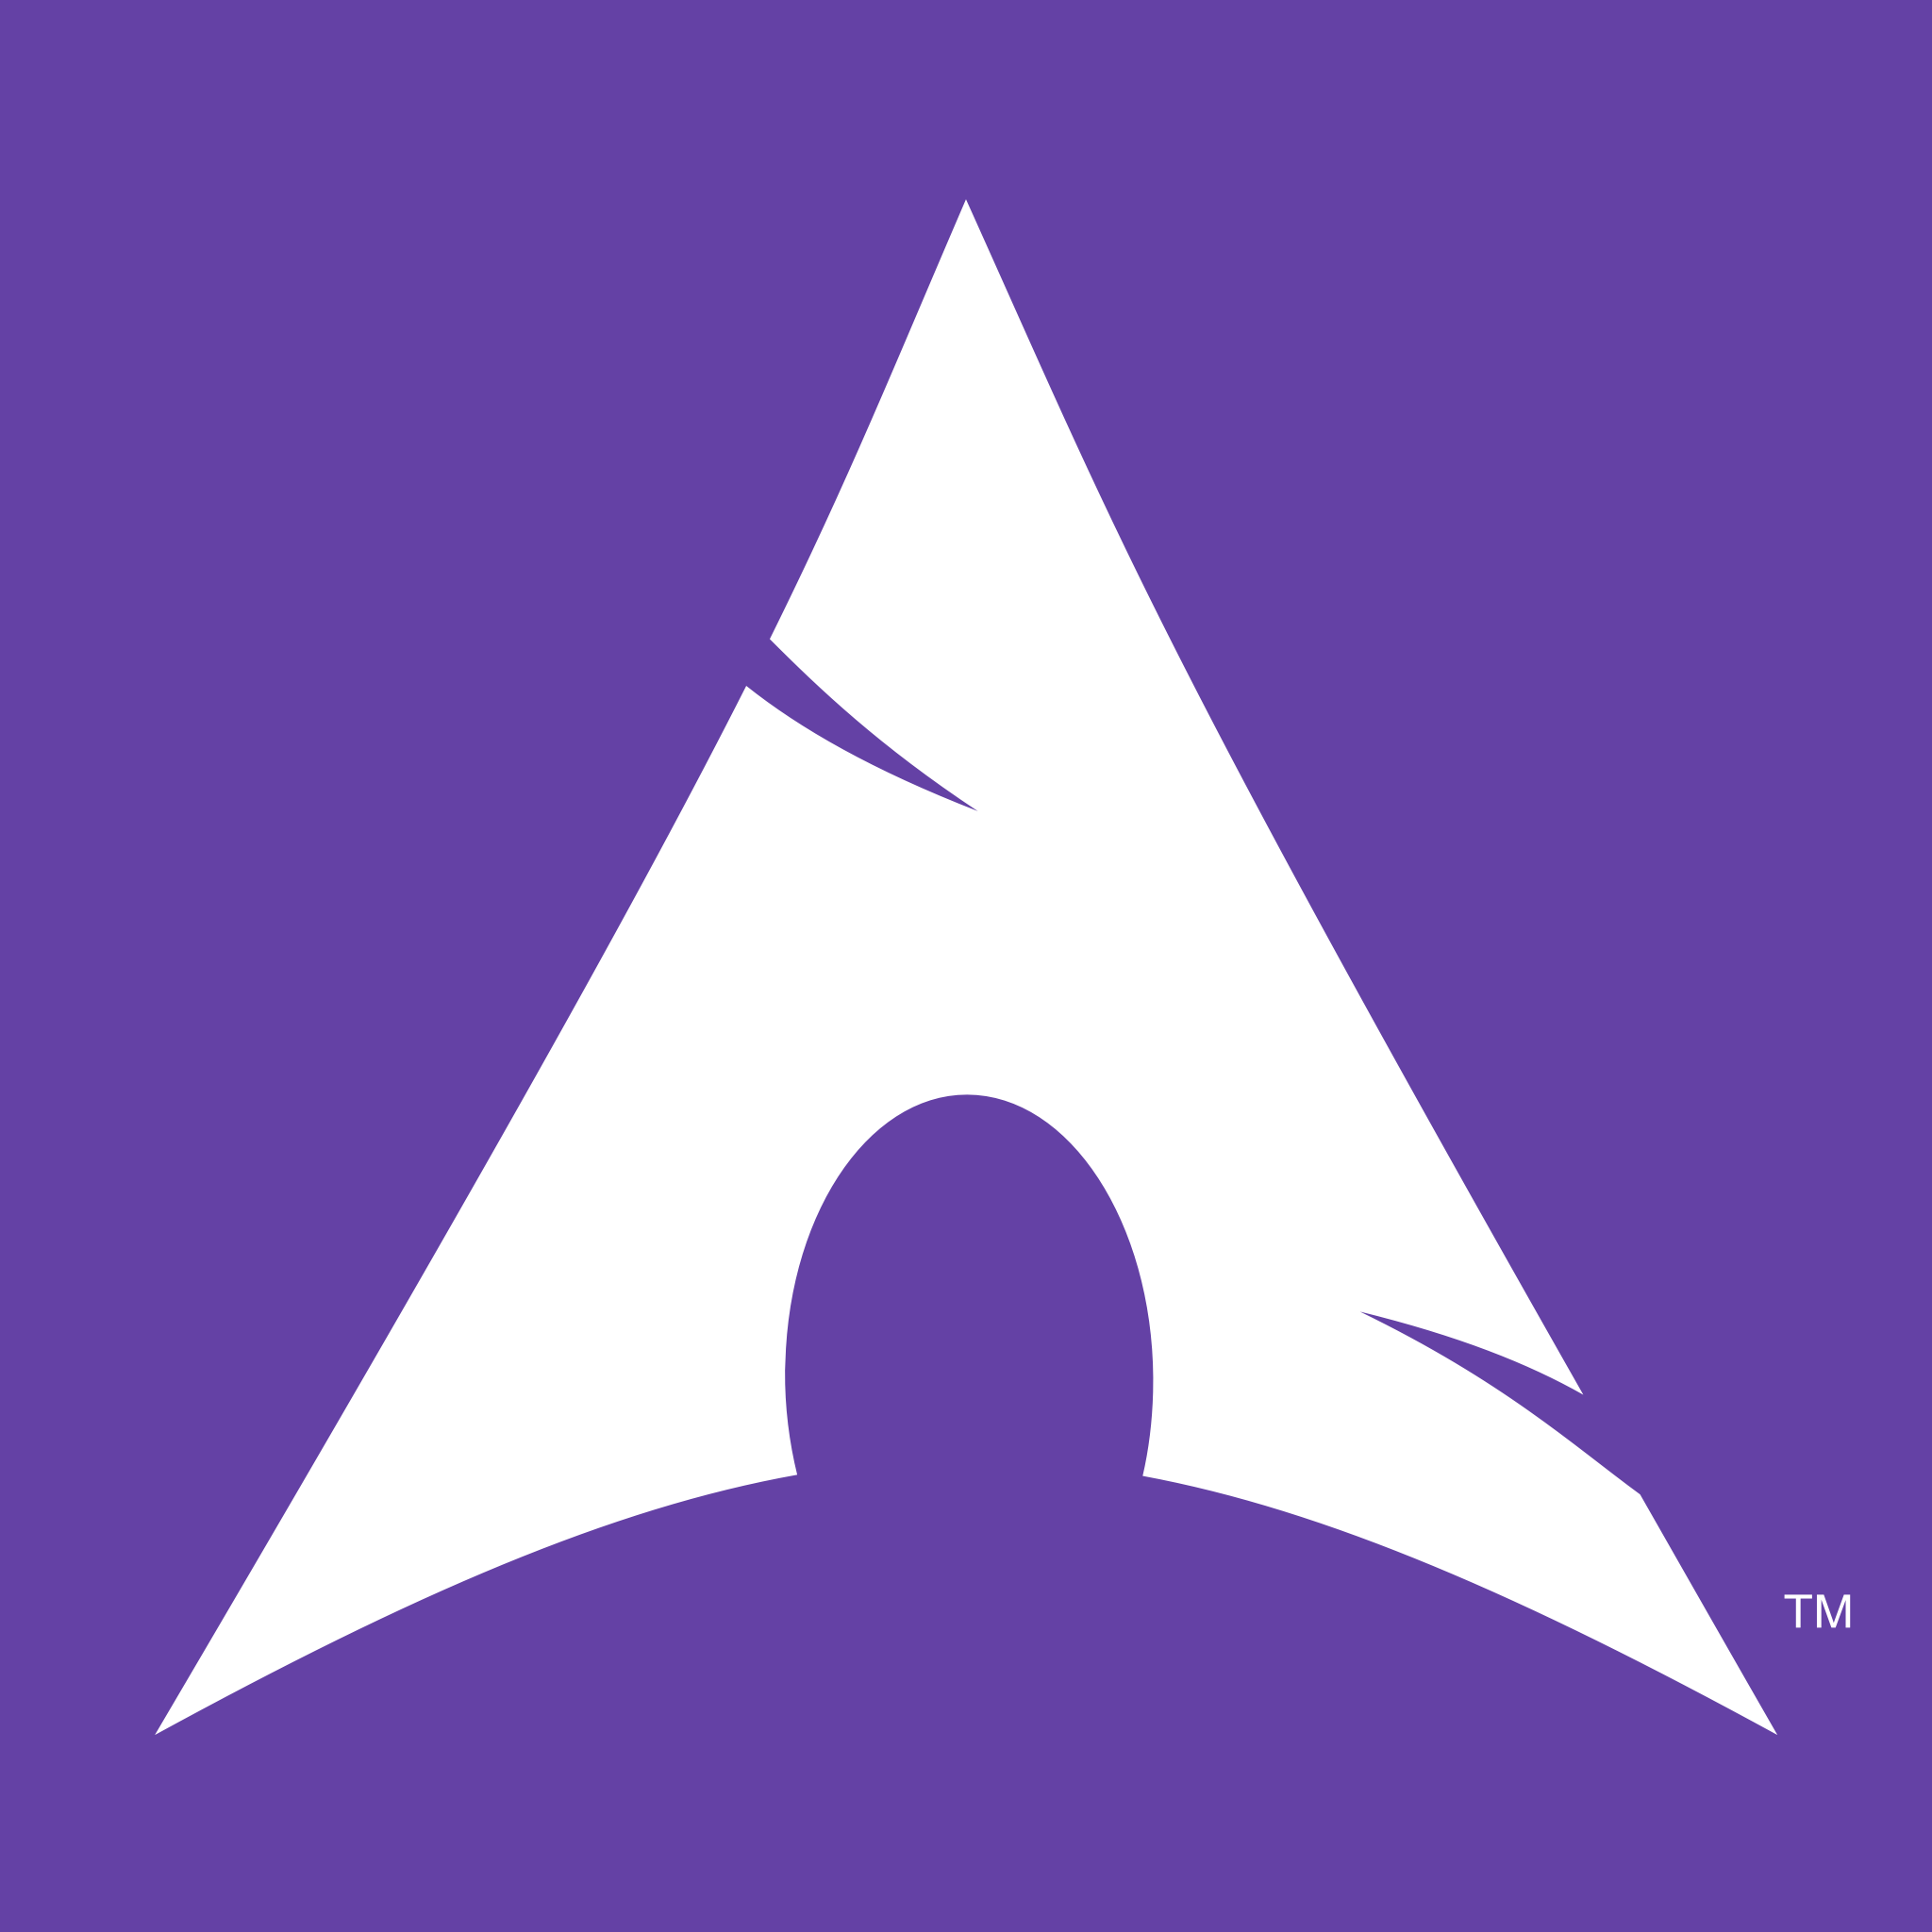 The Twitch installs Arch logo